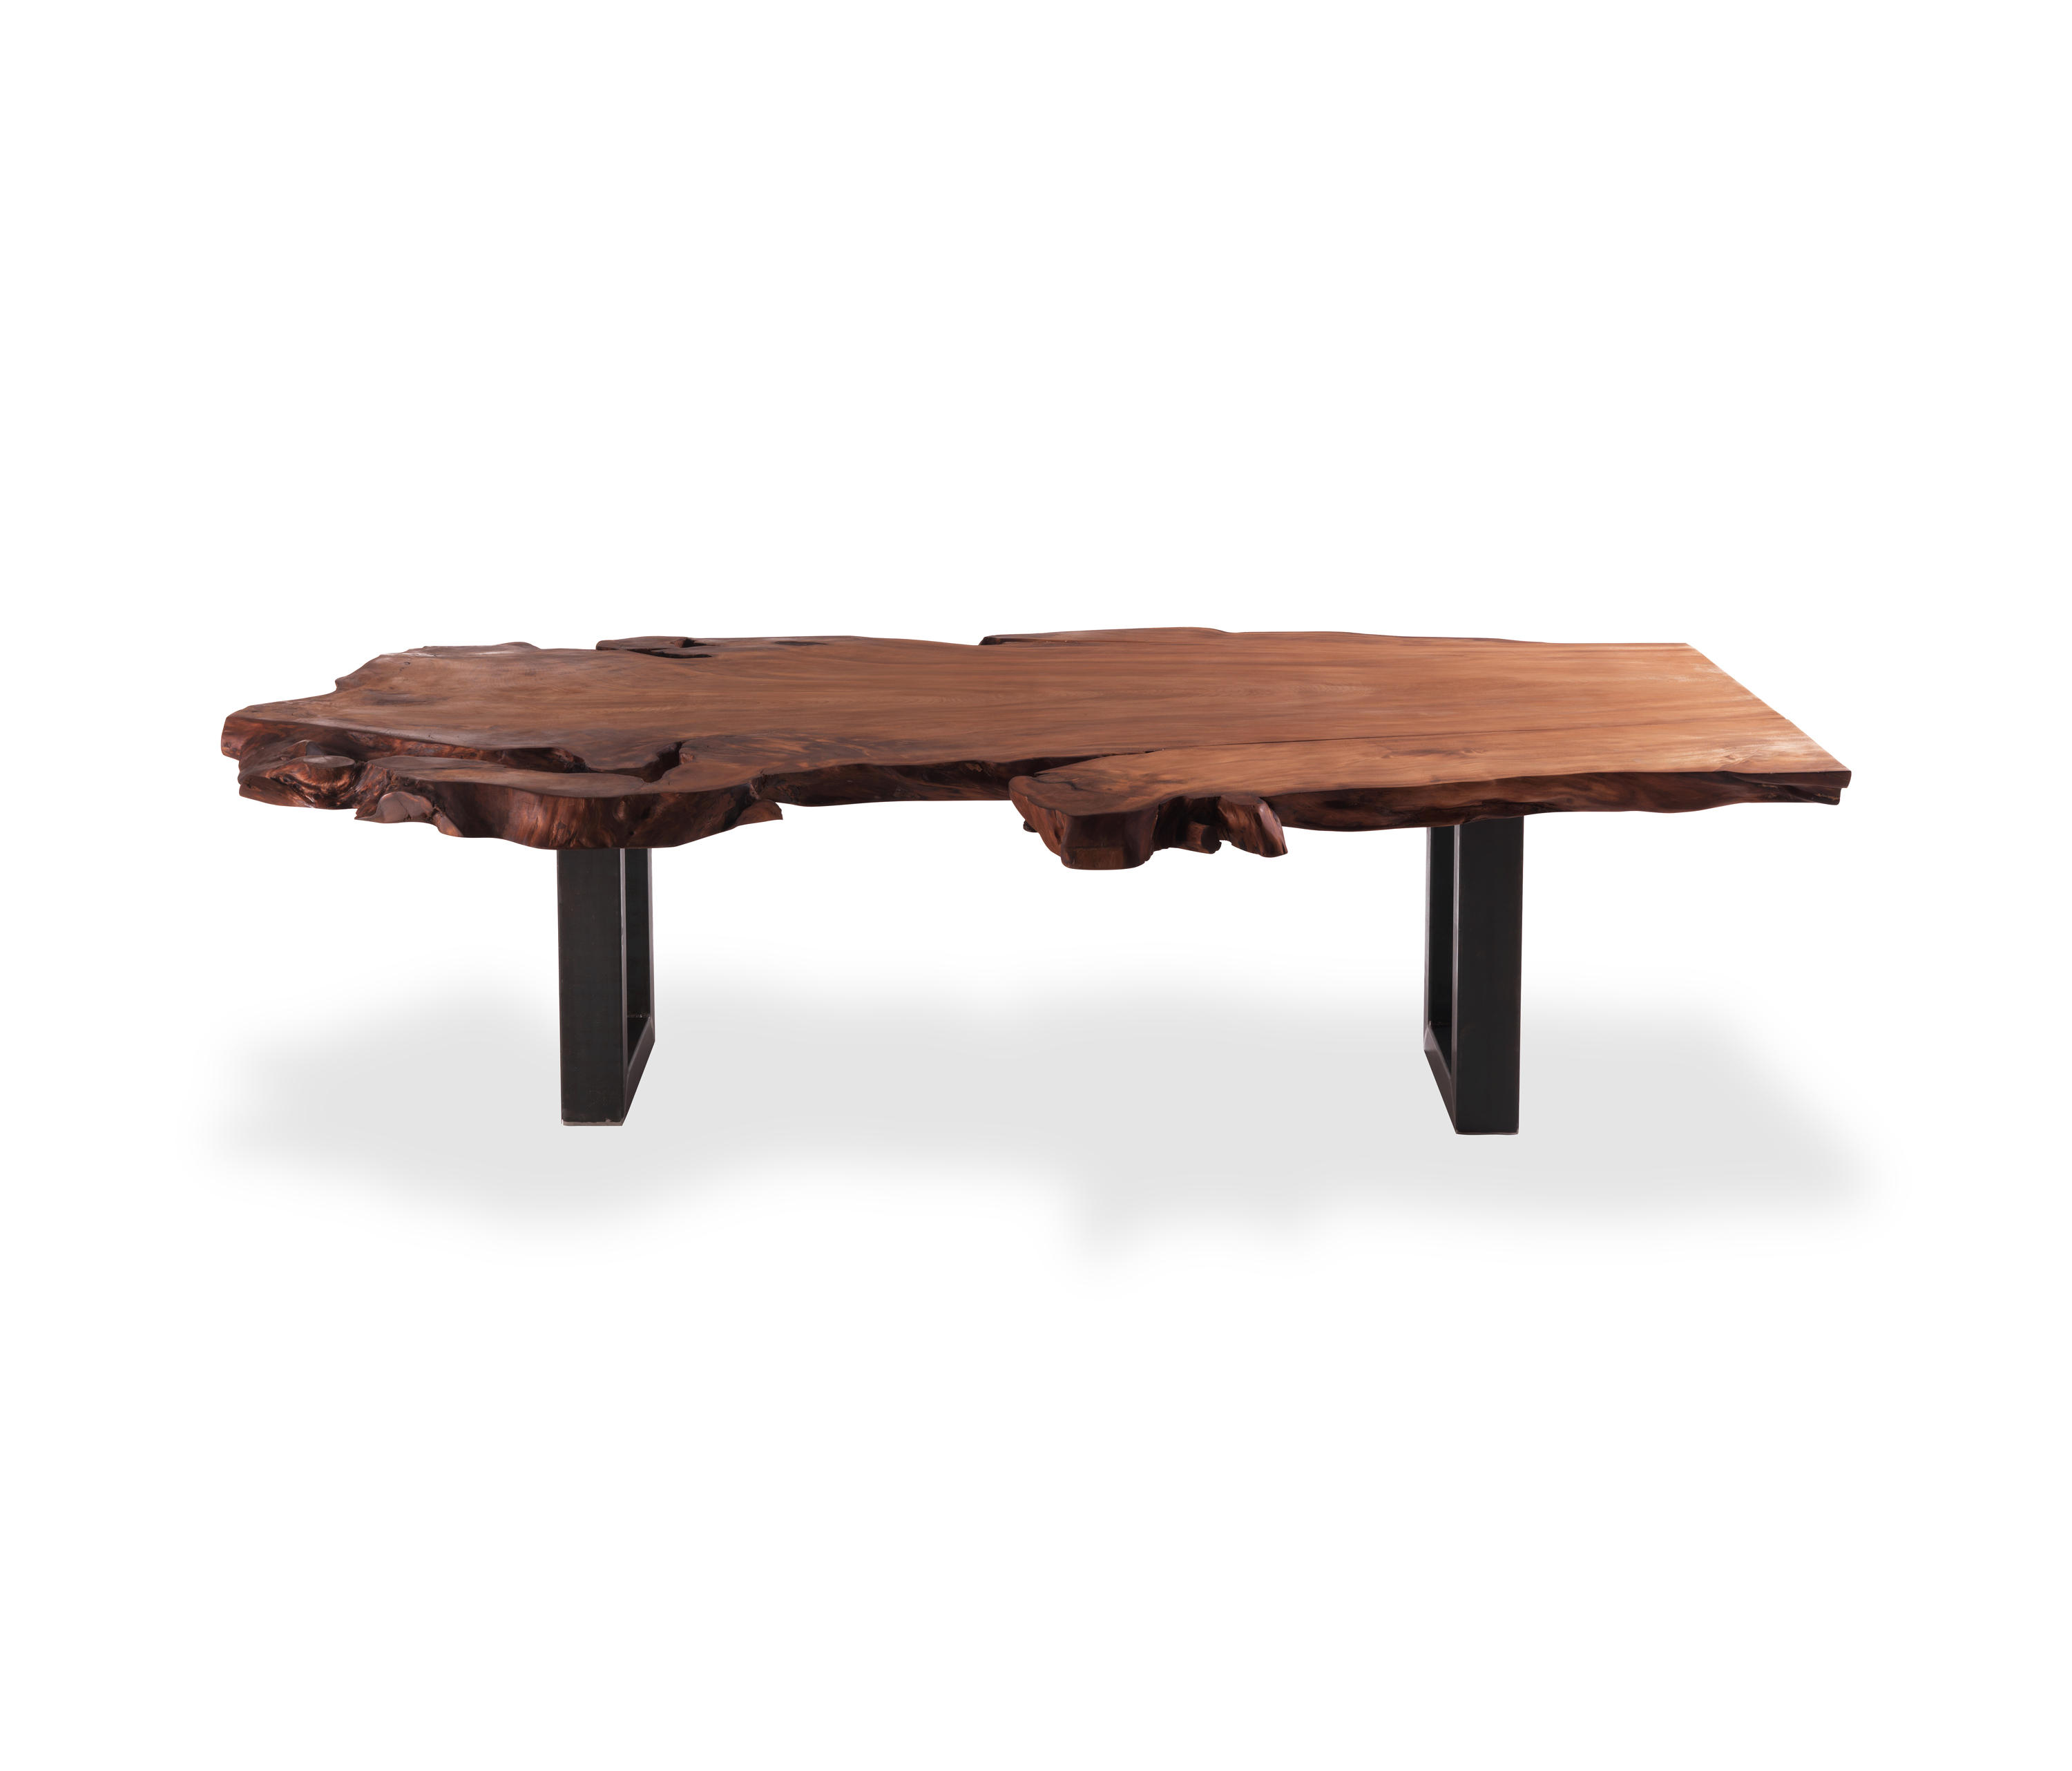 KAURI AUCKLAND Dining tables from Riva 1920